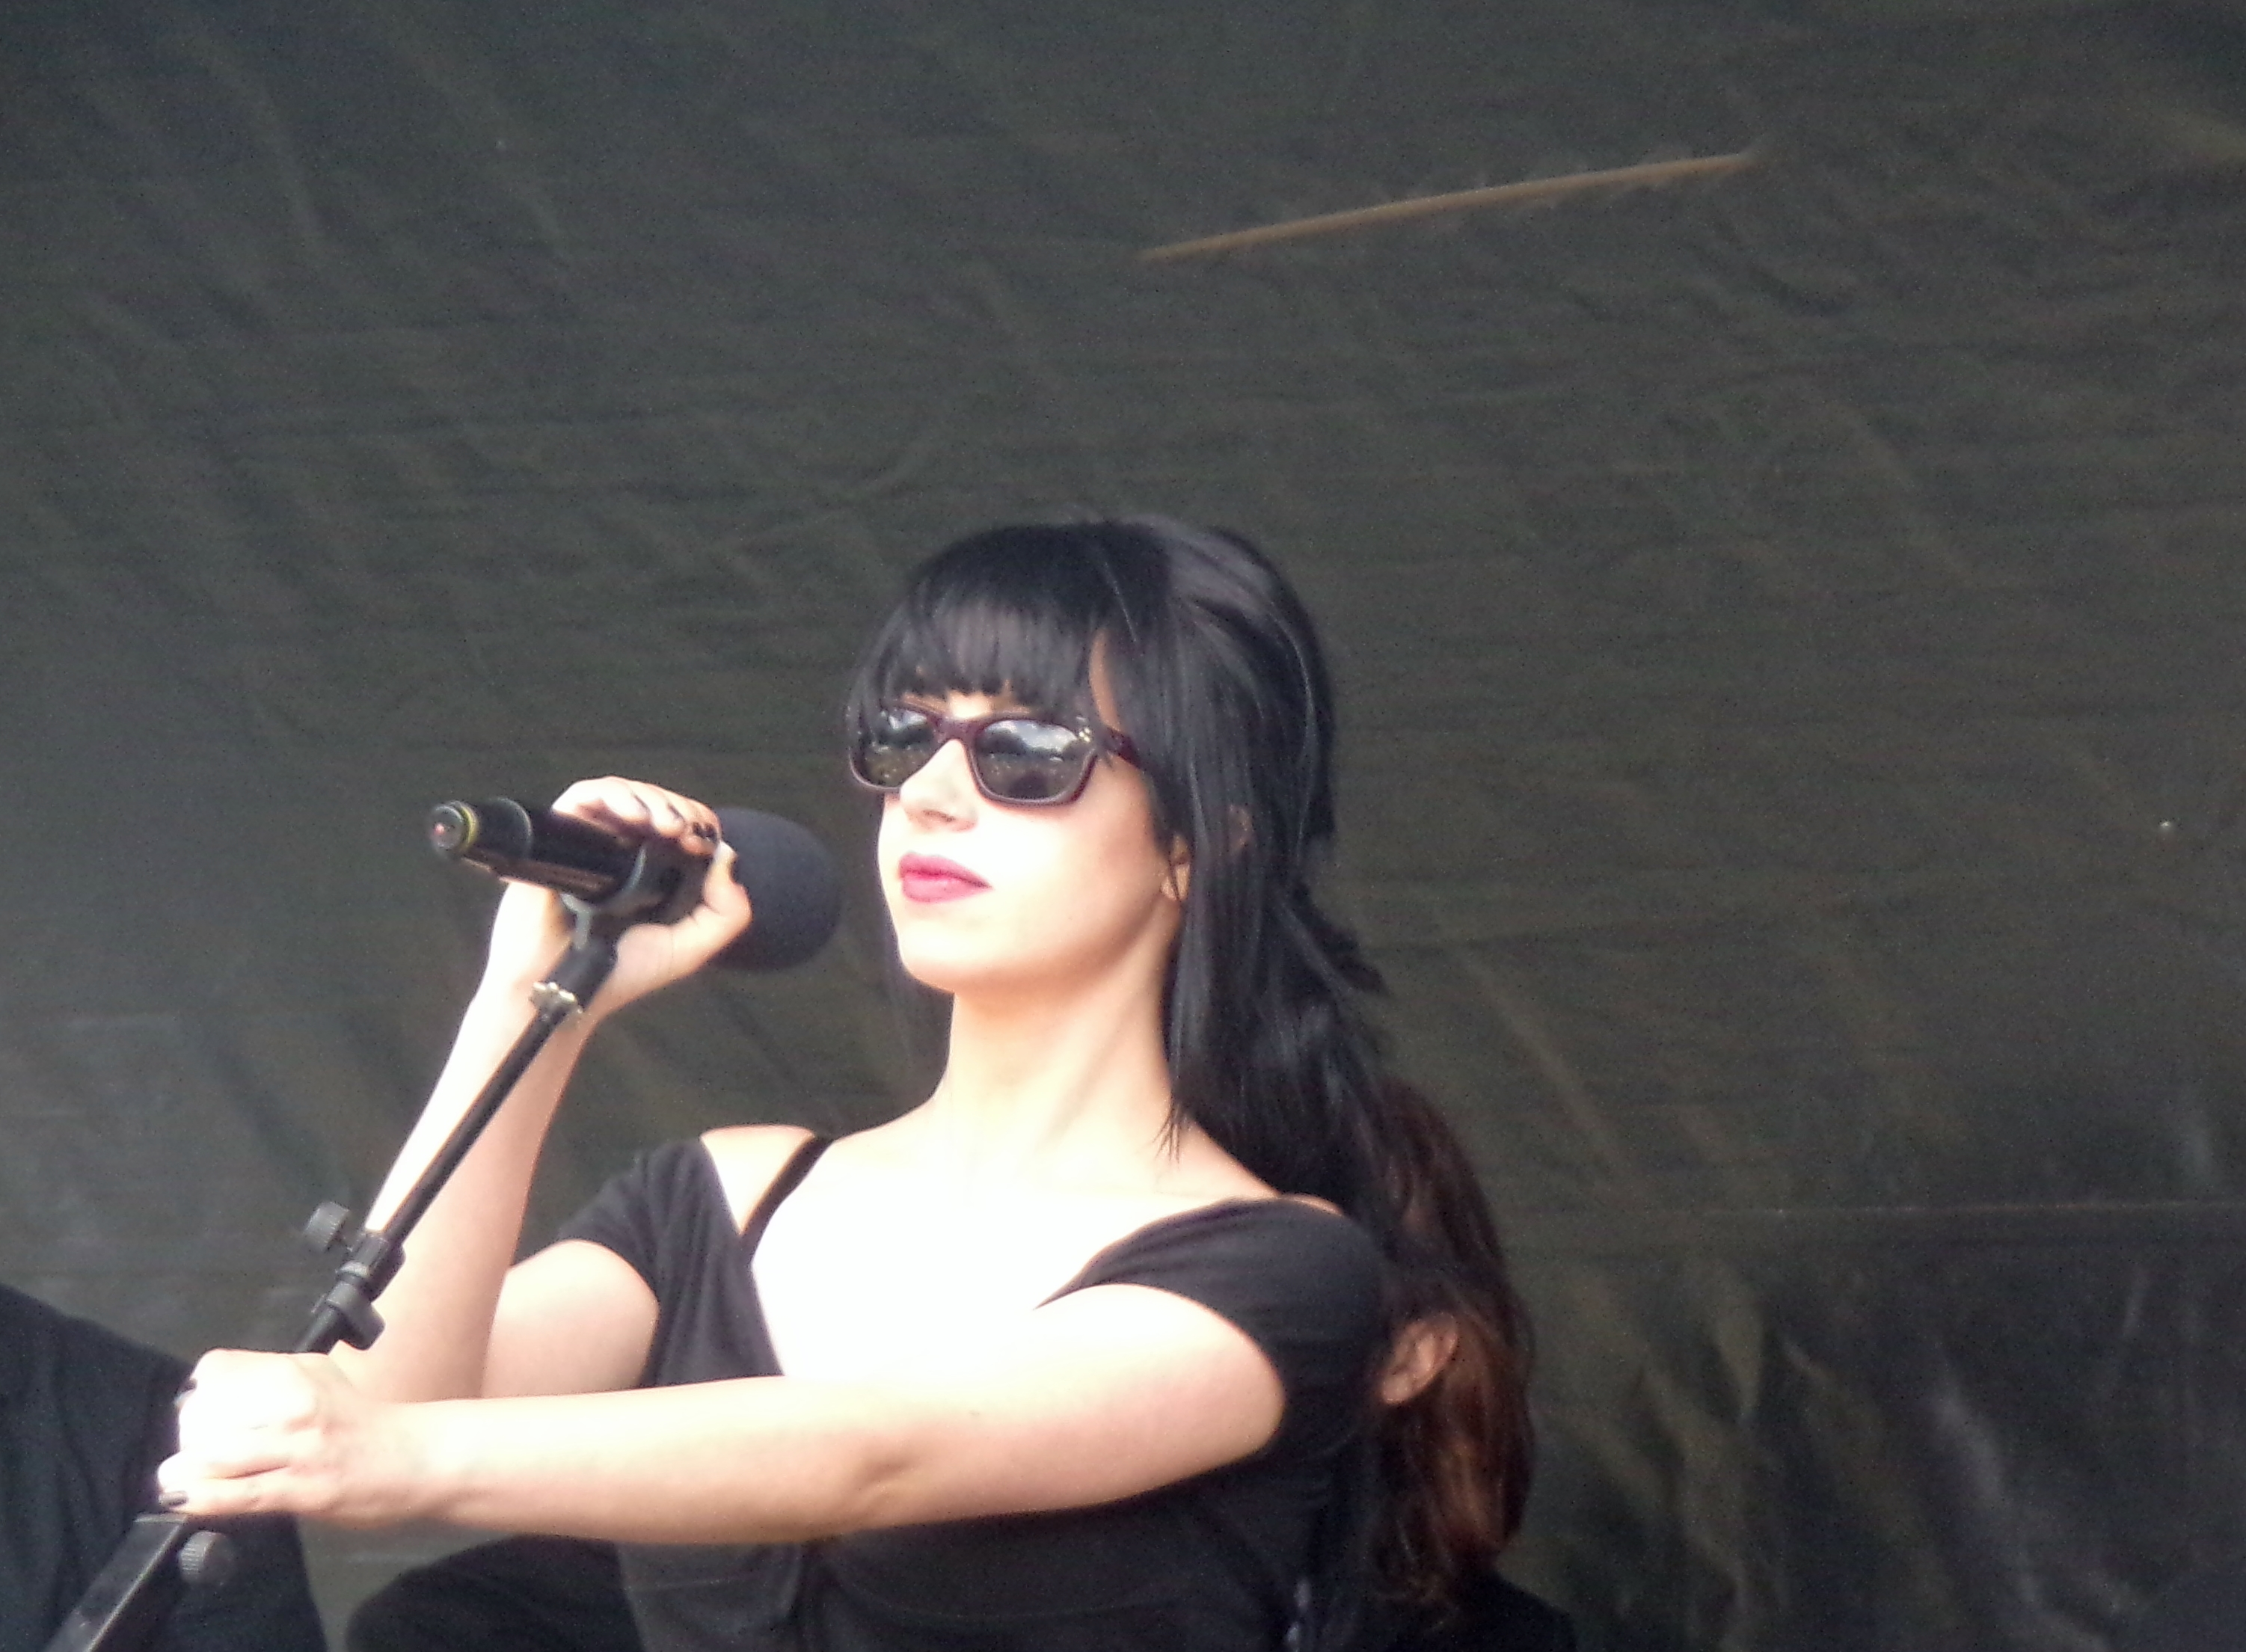 singer with sunglasses 6